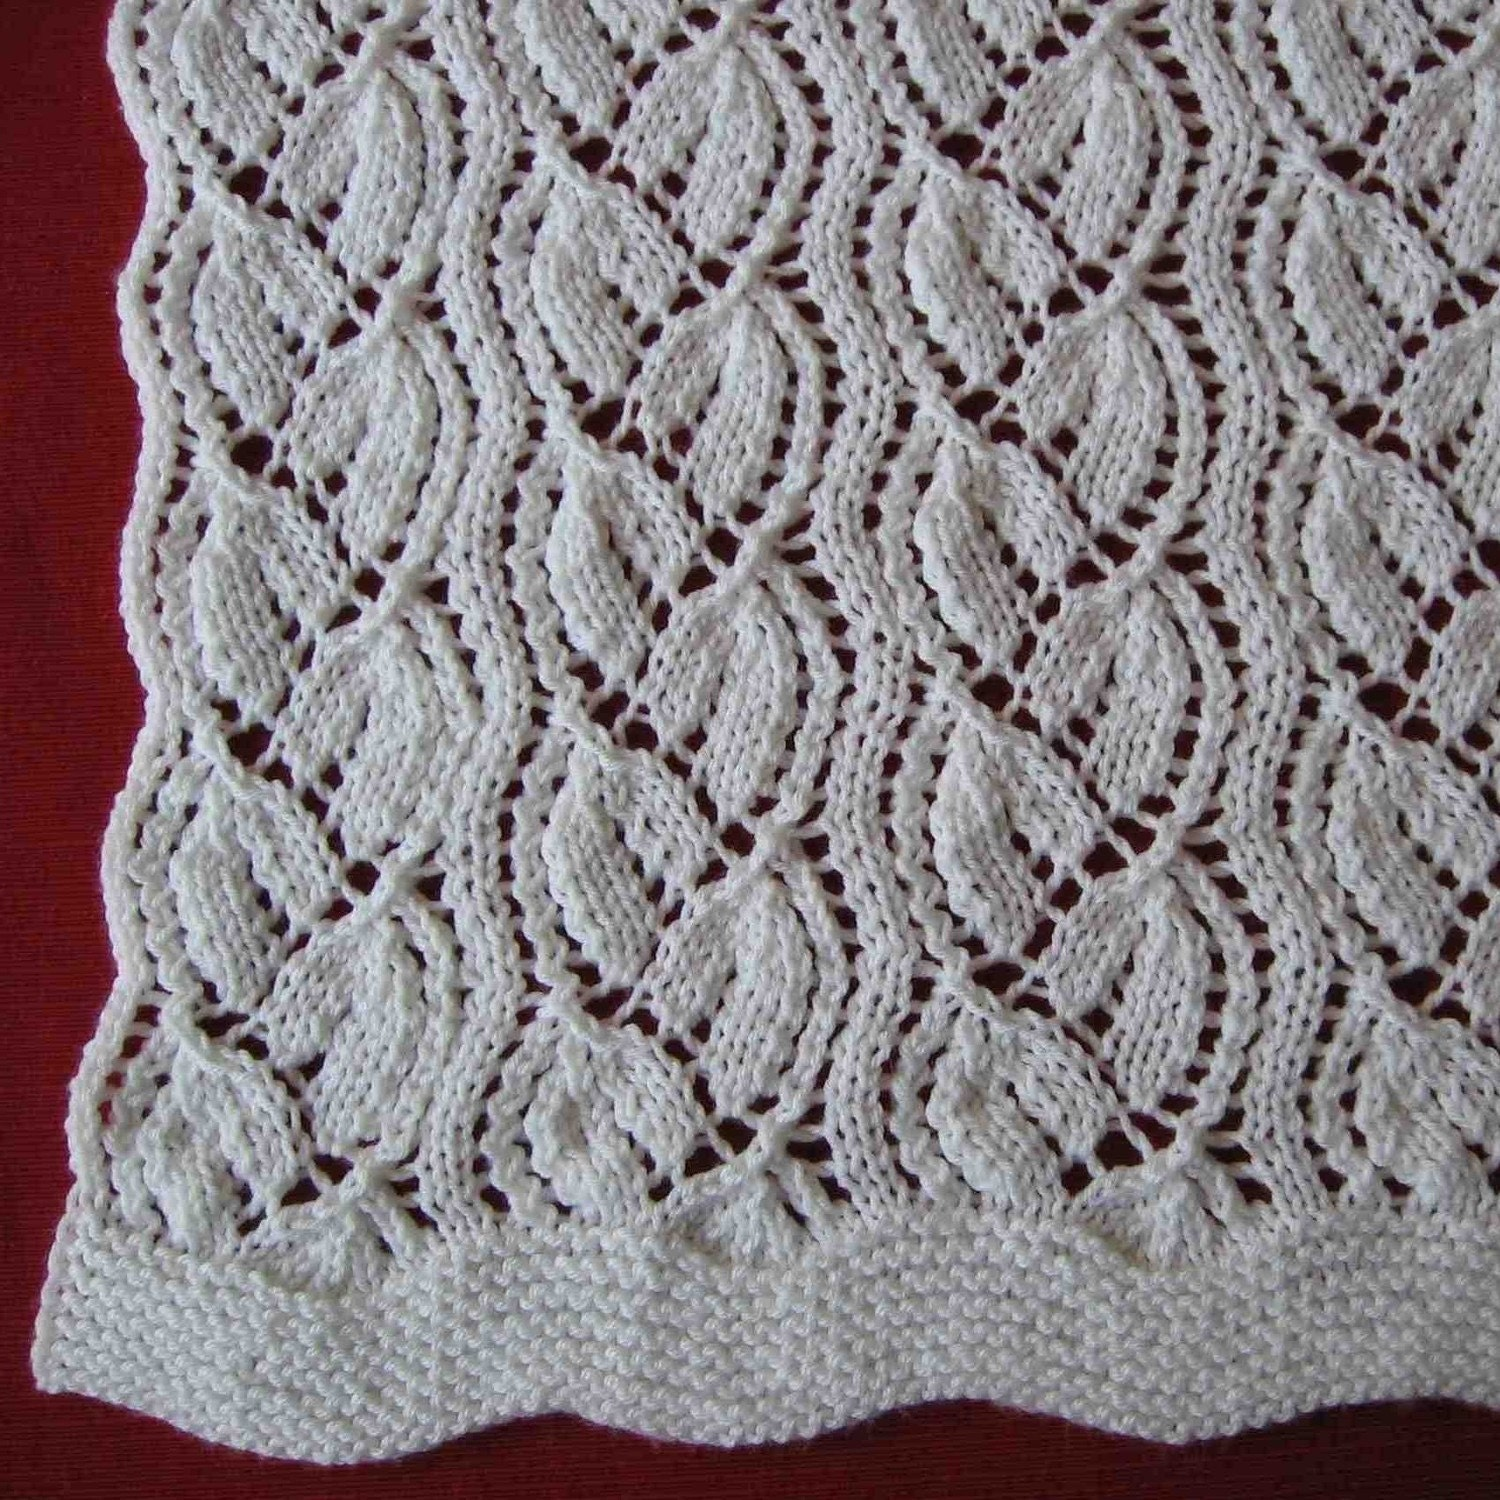 Lace Knitting Patterns In The Round : Lace Wedding Throw knitting pattern with free offer for